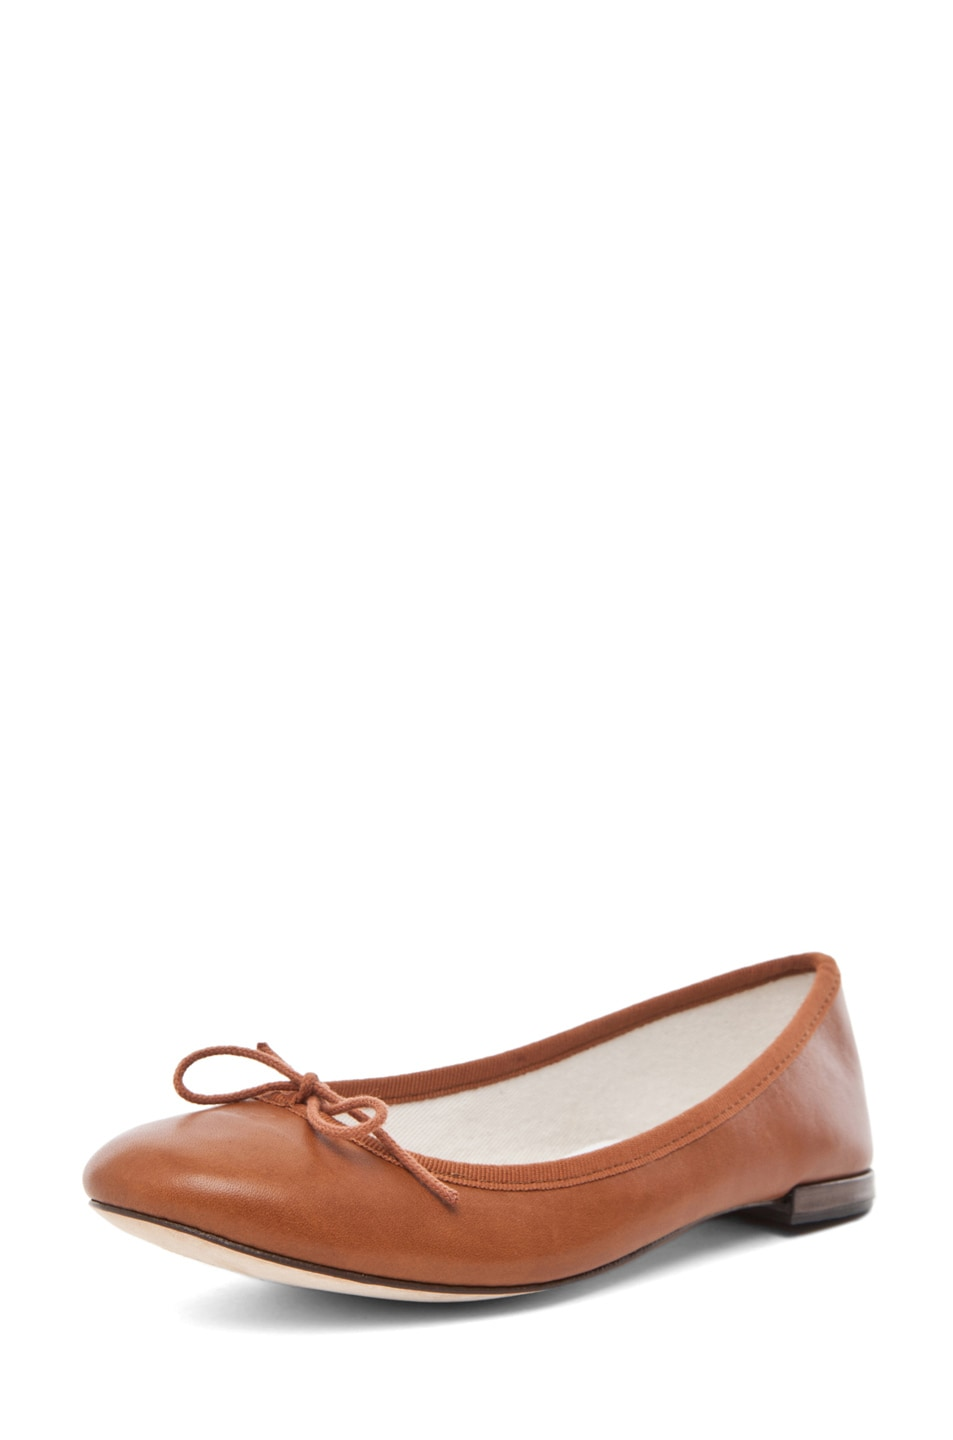 Image 2 of Repetto Leather Flat in Cognac